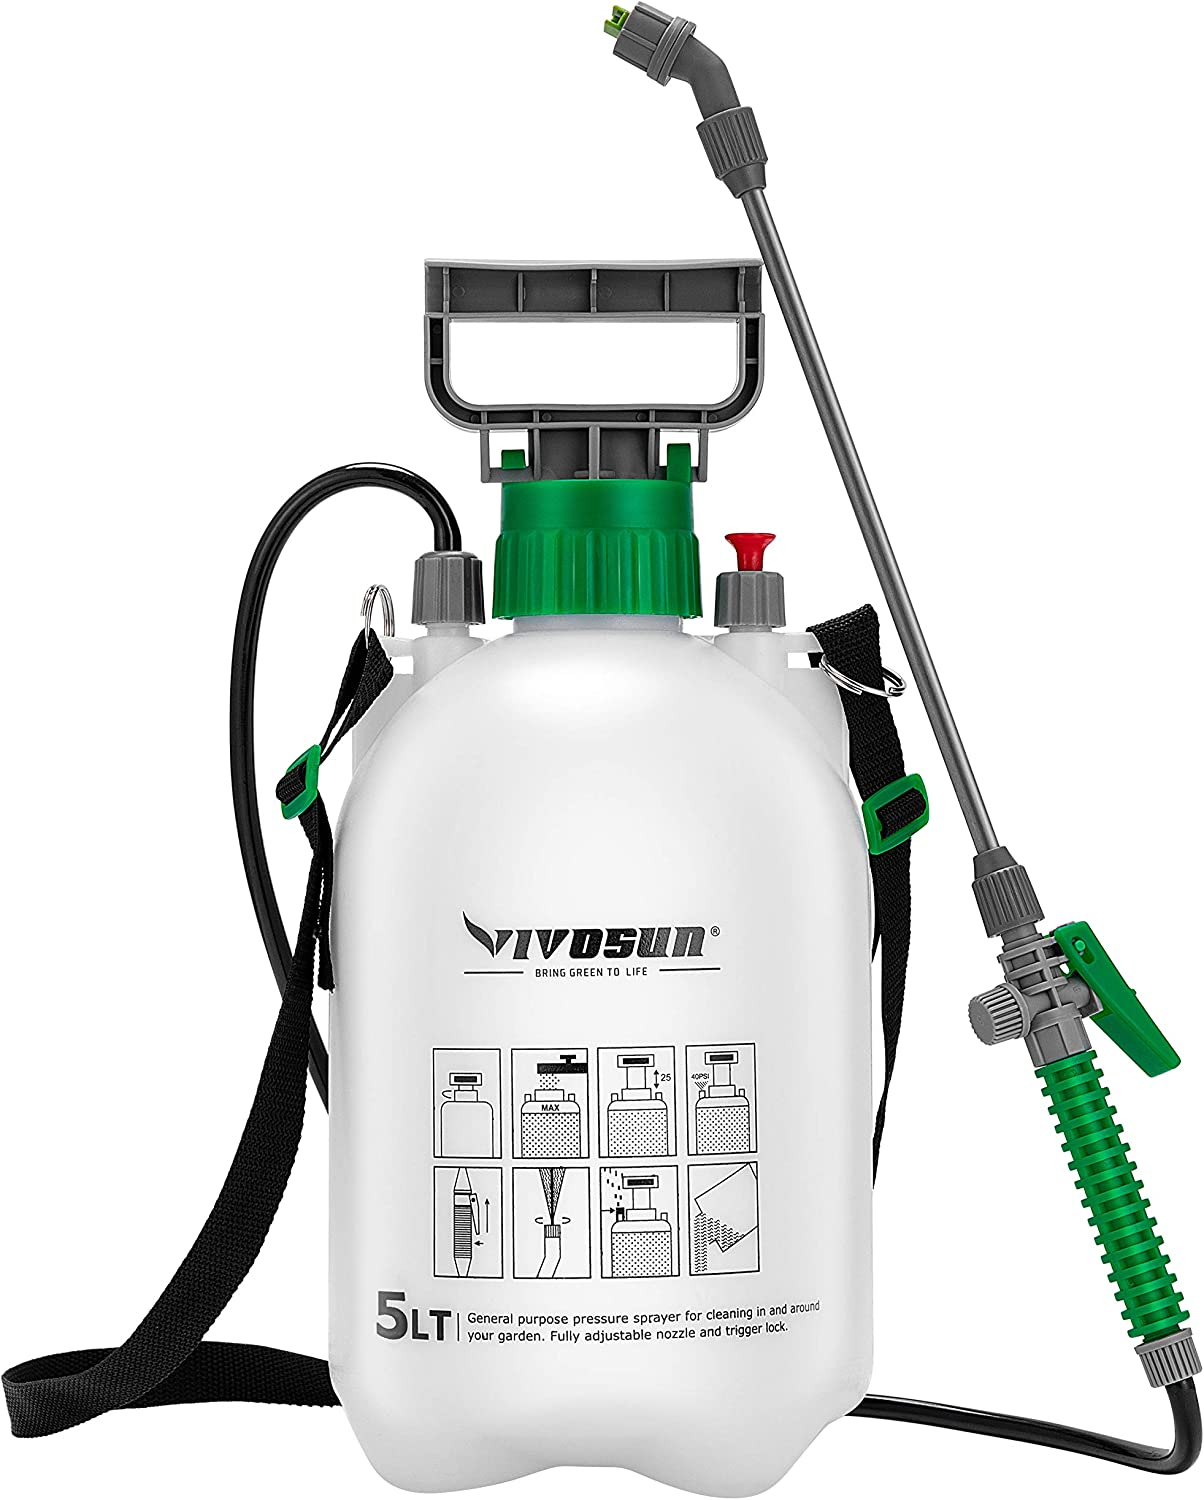 VIVOSUN 1.3 Gallon Lawn and Cheap mail order shopping Garden Sprayer Recommended Pressure 3 Pump with